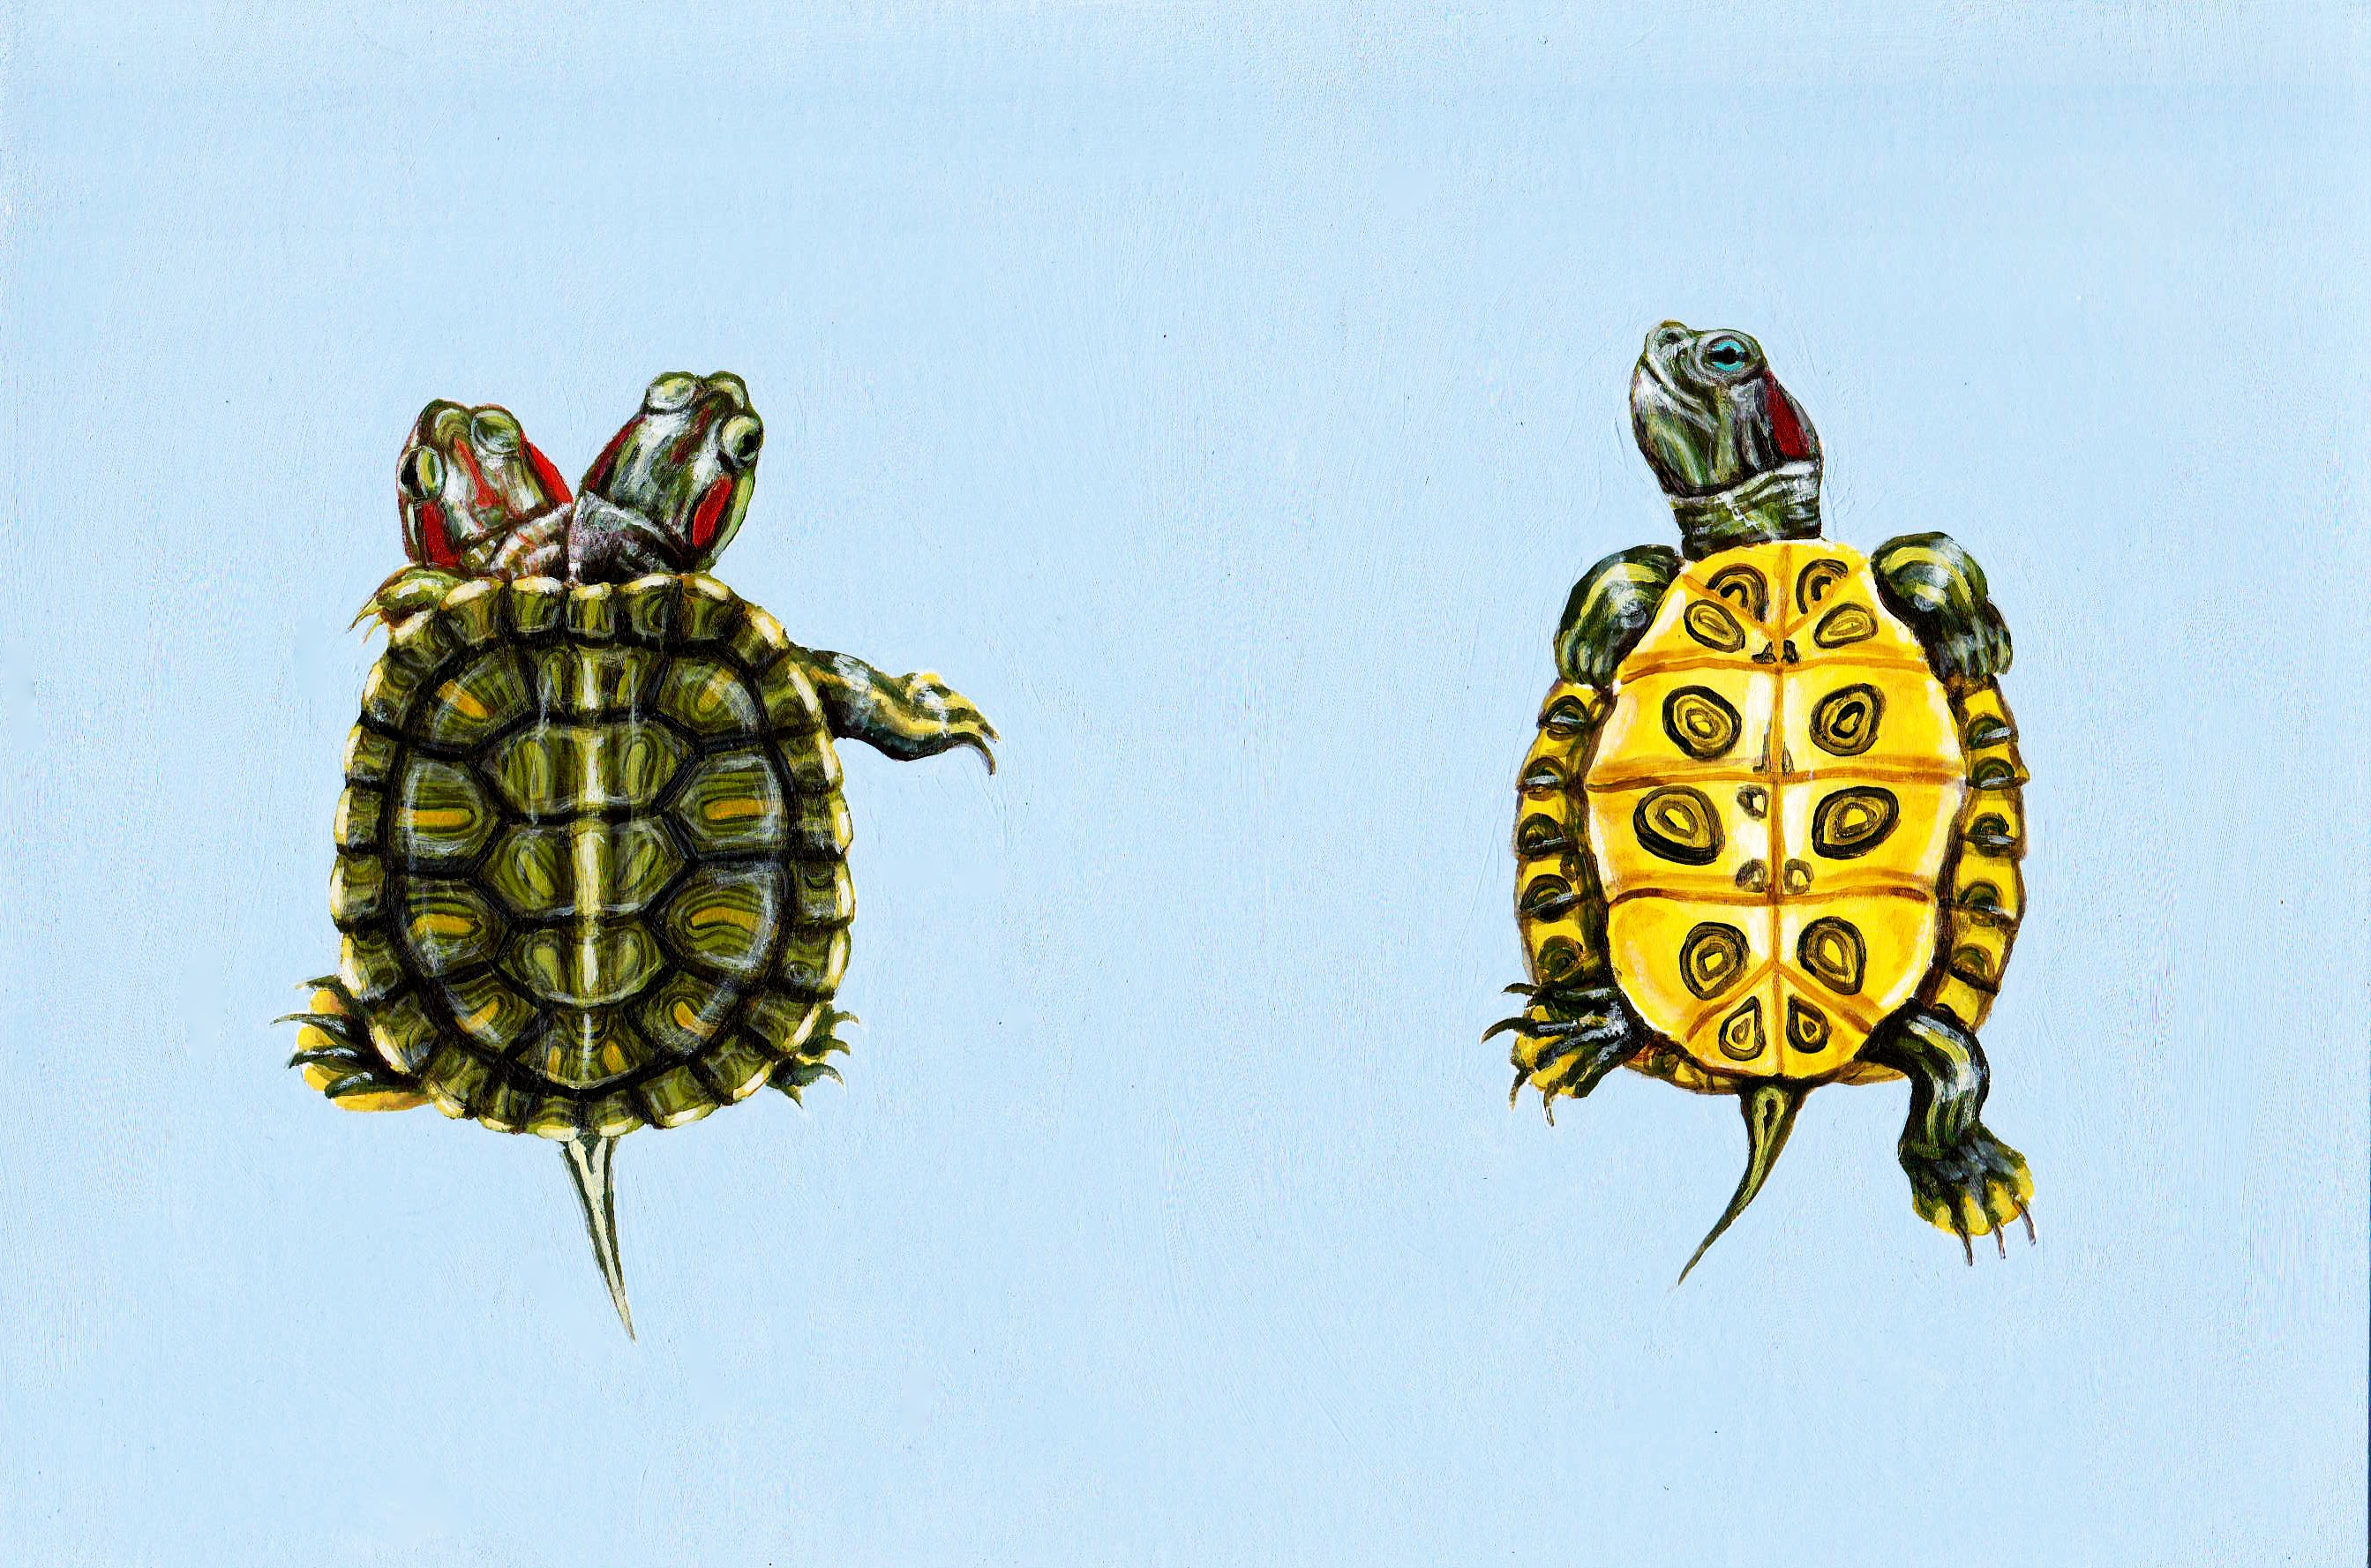 Rectangular acrylic painting of two baby red-eared slider turtles on a pale sky blue background. The one on the left has polycephaly with two heads, and the one on the right is facing its bright yellow stomach to the viewer.